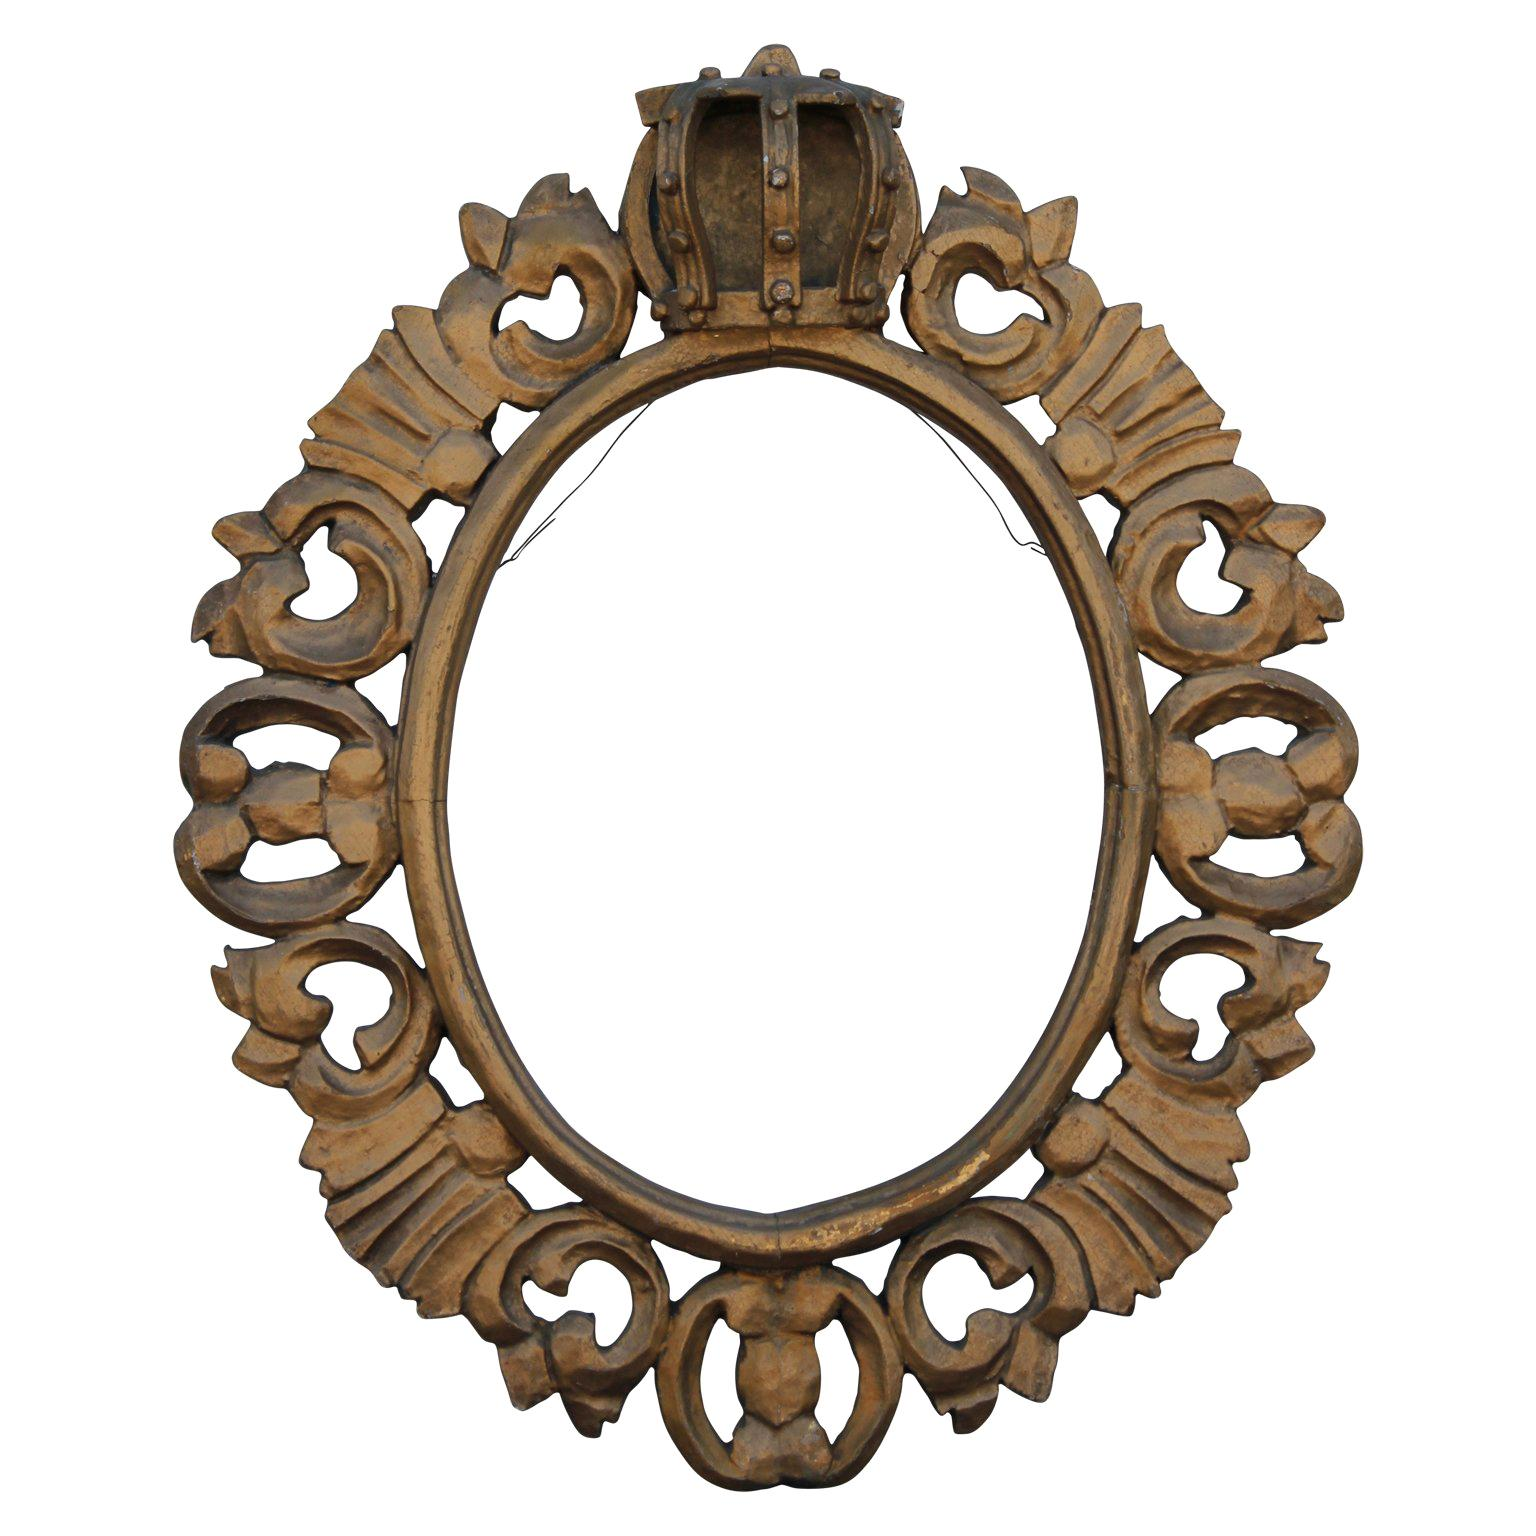 Continental 19th Century Gold Oval Frame Carved Royal Crown and Acanthus Leaves